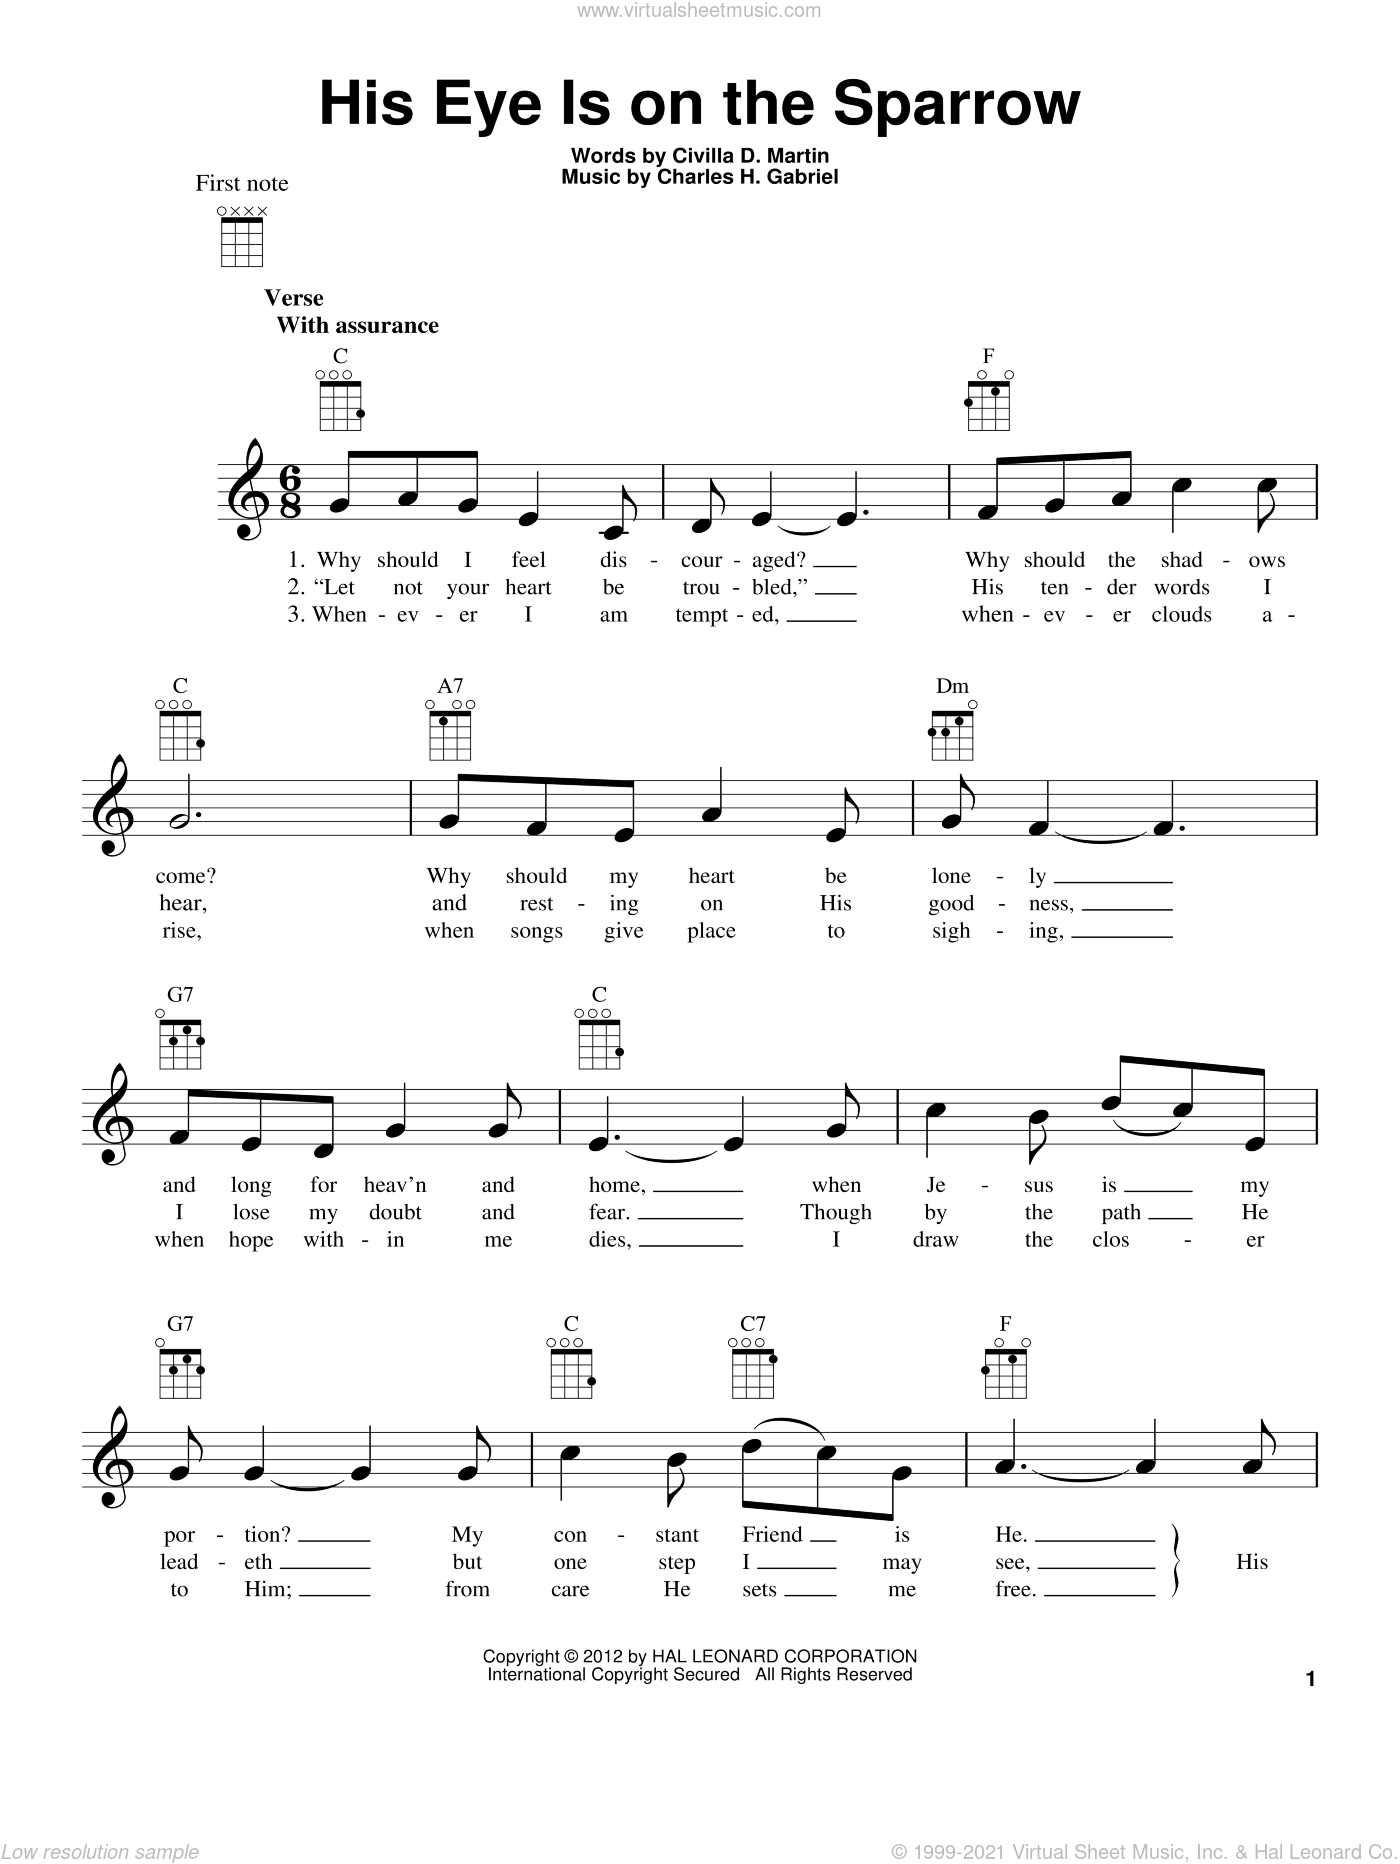 His Eye Is On The Sparrow sheet music for ukulele by Charles H. Gabriel and Civilla D. Martin, intermediate skill level